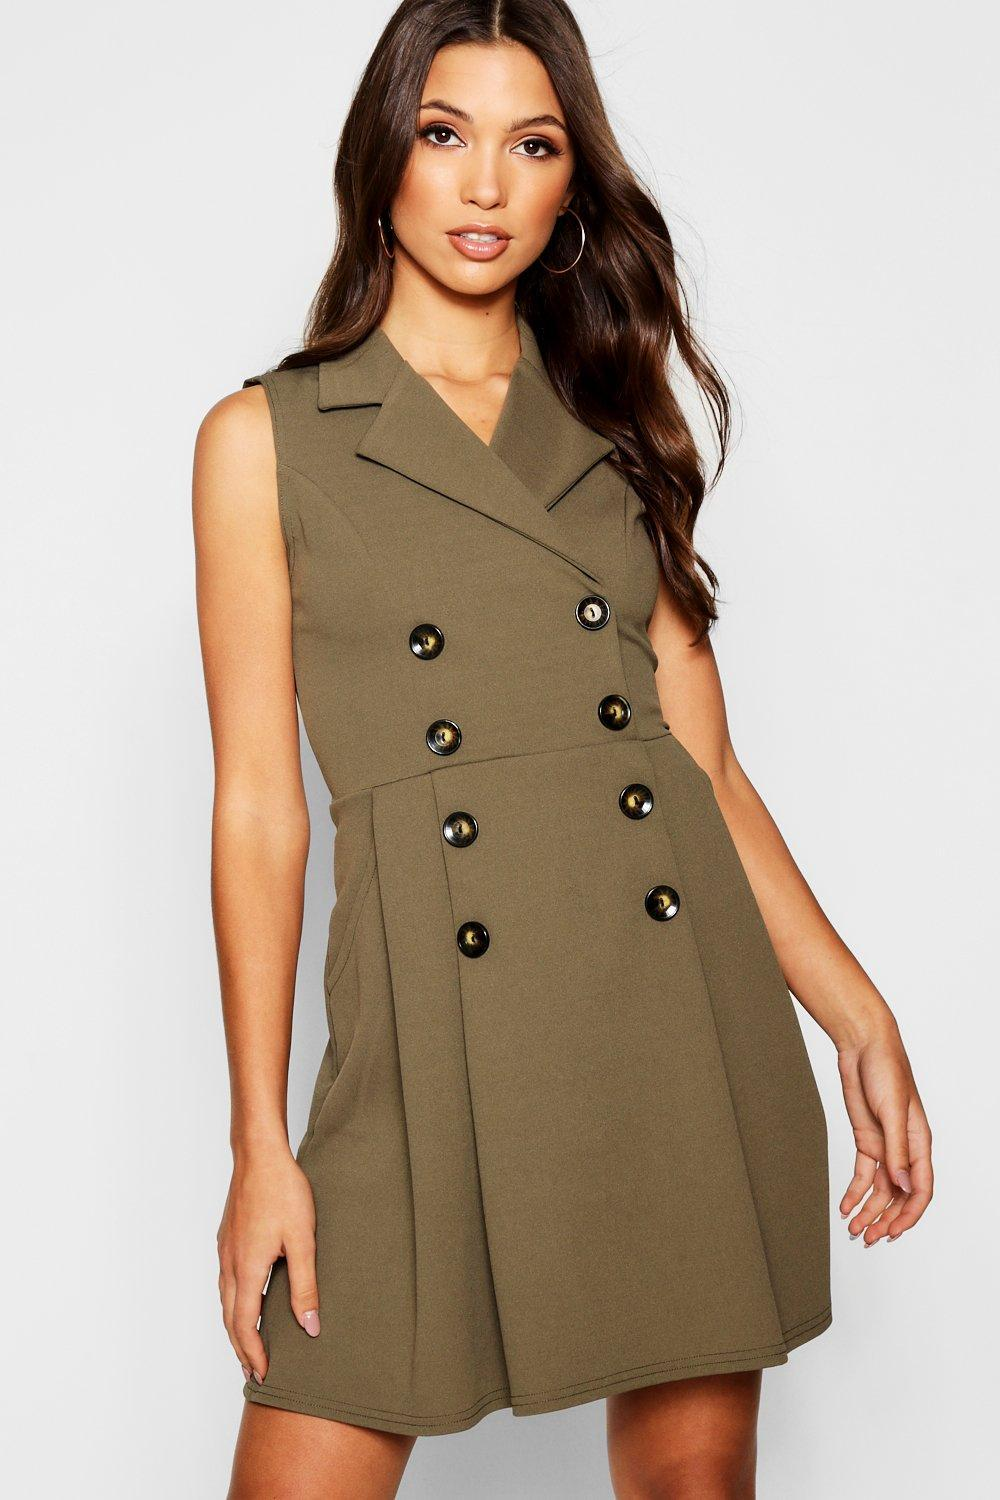 509d4f8db576b Boohoo Blazer Double Breasted Pocket Detail Horn Button Dress in ...